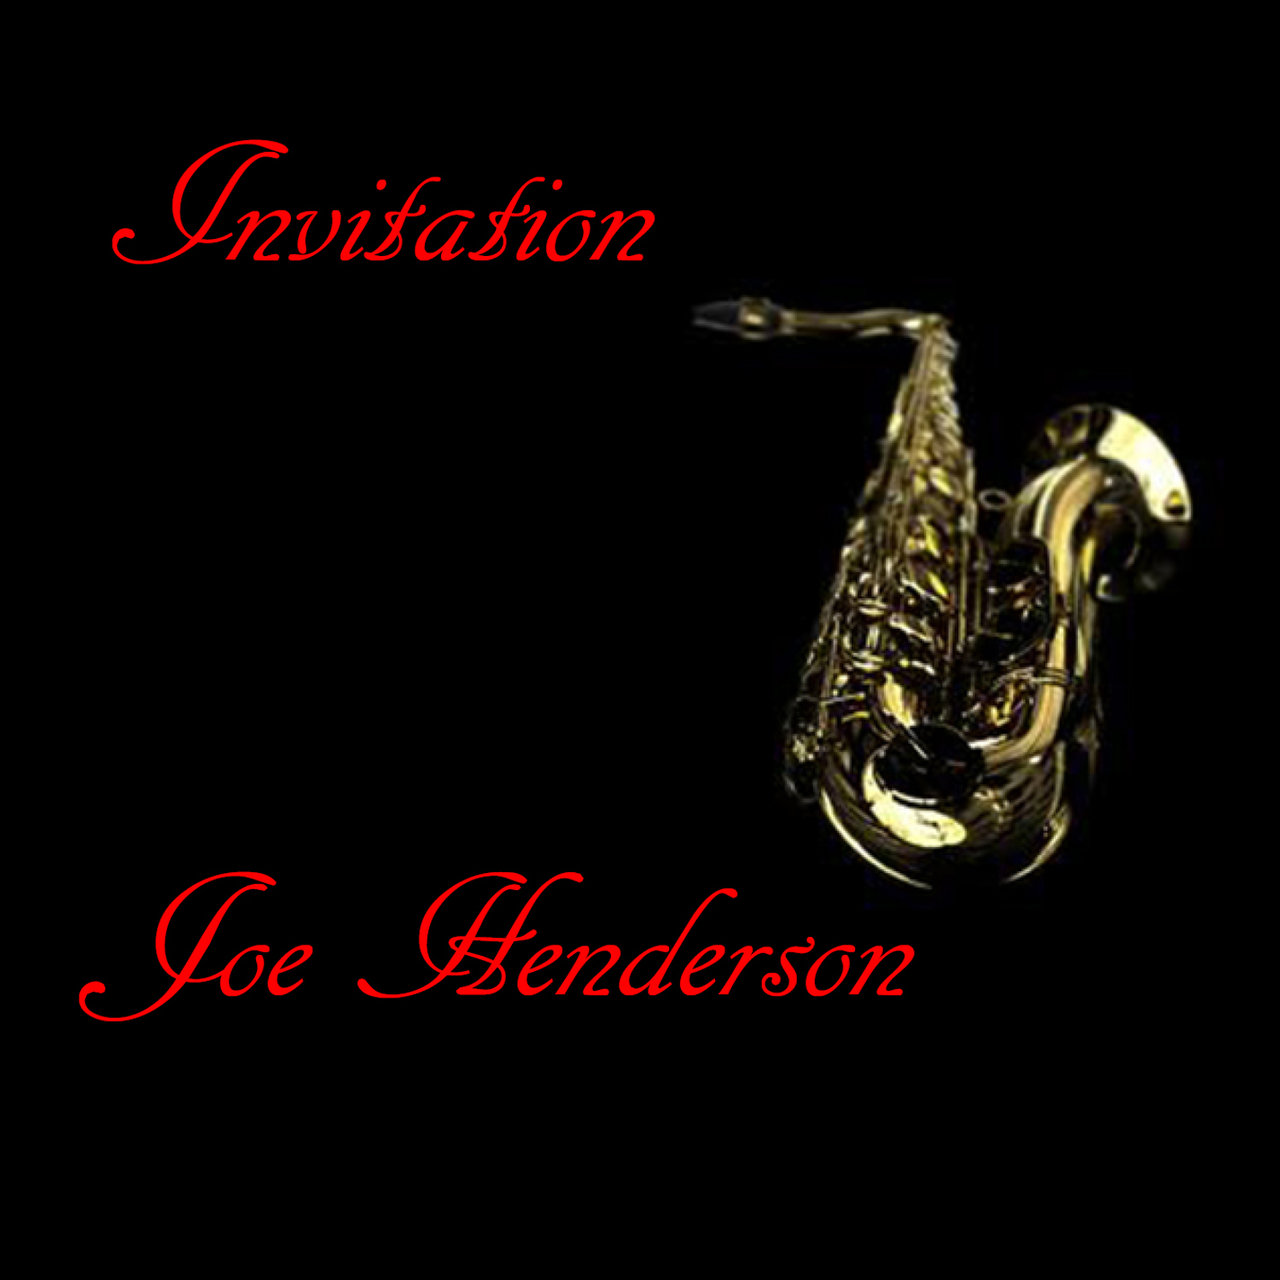 Listen To Invitation By Joe Henderson On Tidal